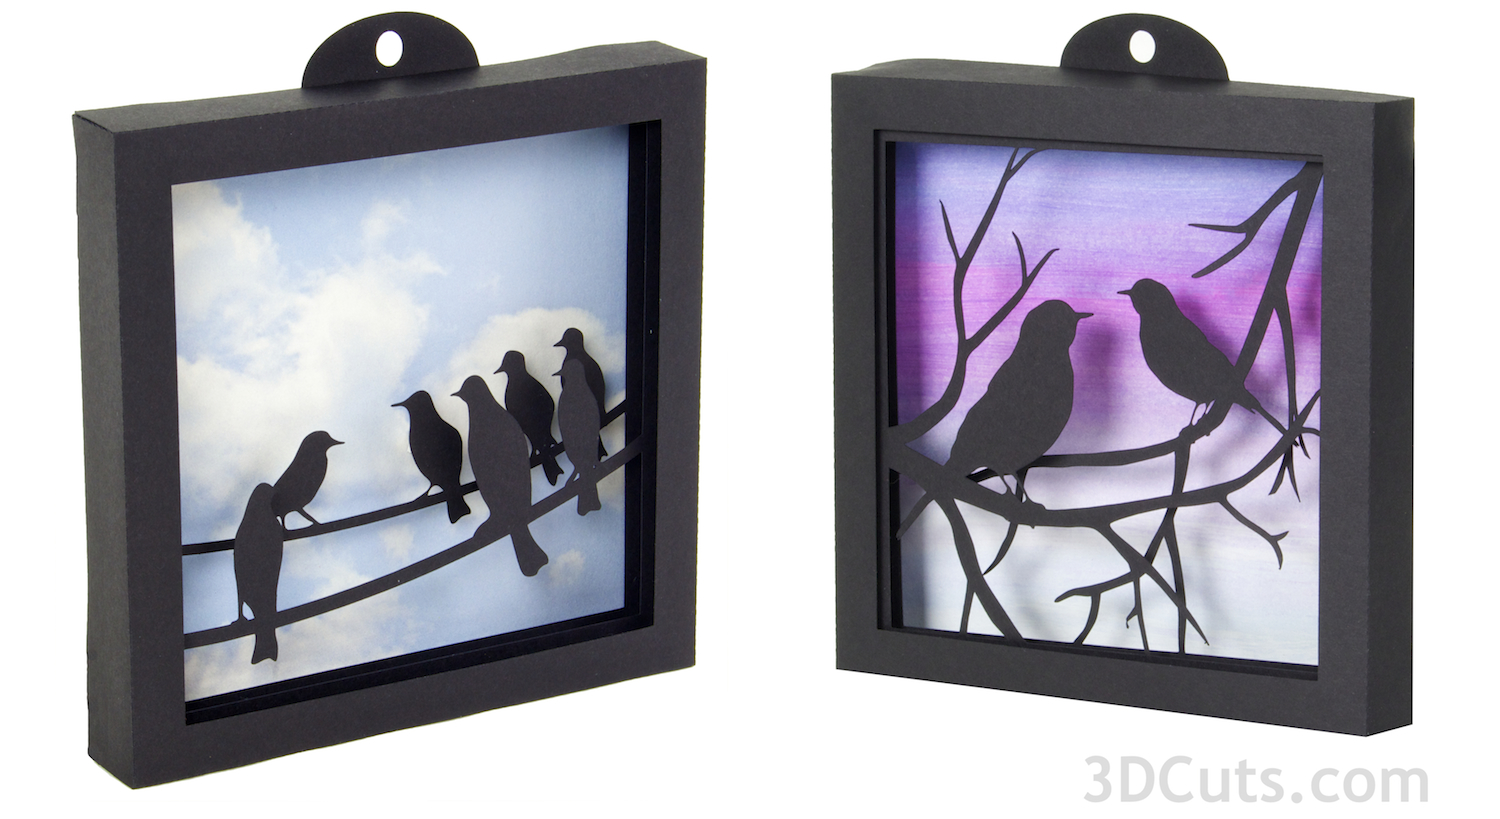 Bird Shadow Boxes sid by side.jpg